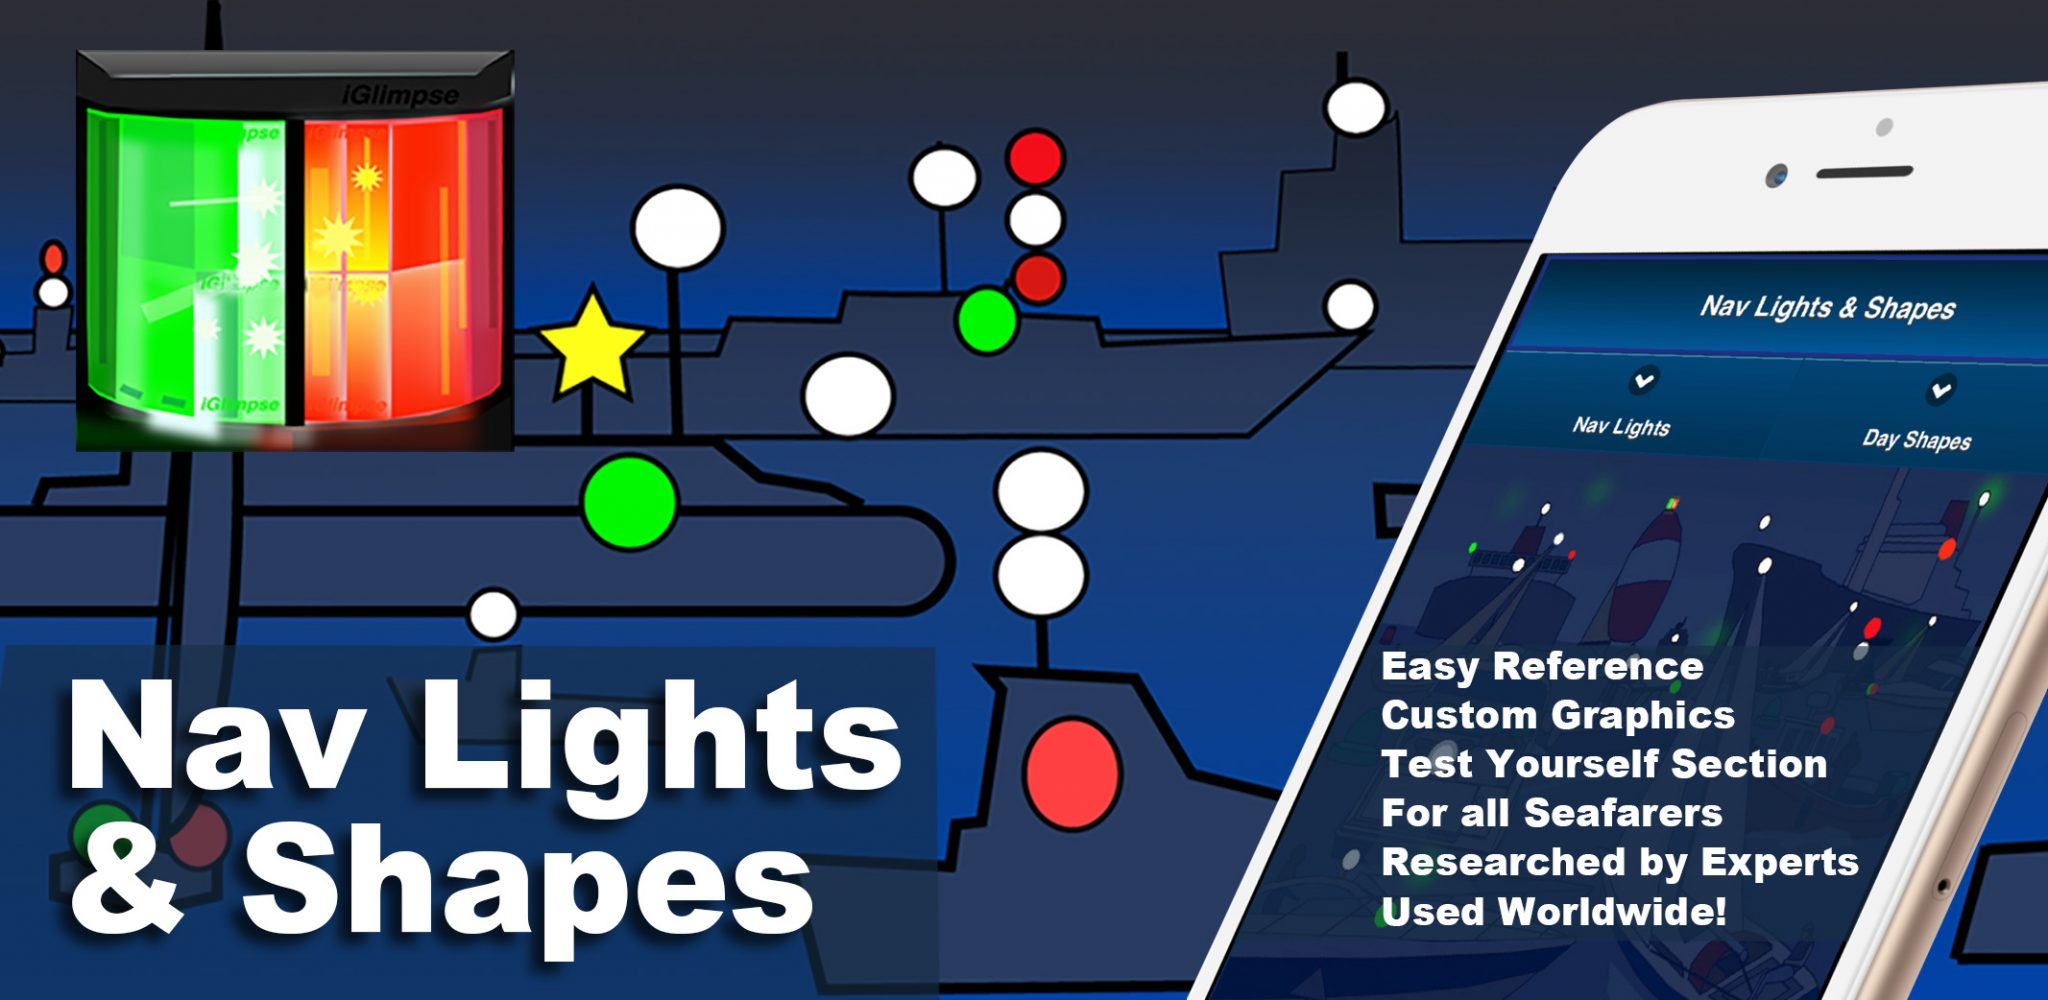 """Colregs: Nav Lights & Shapes App provides skippers and crew of recreational and commercial vessels with a quick reference tool to help them identify vessels in their vicinity and the activities they are engaged in, as specified in Part C: """"Lights and Shapes"""" (Rules 20-31) of the International Regulations for Preventing Collisions at Sea (IRPCS) or ColRegs."""